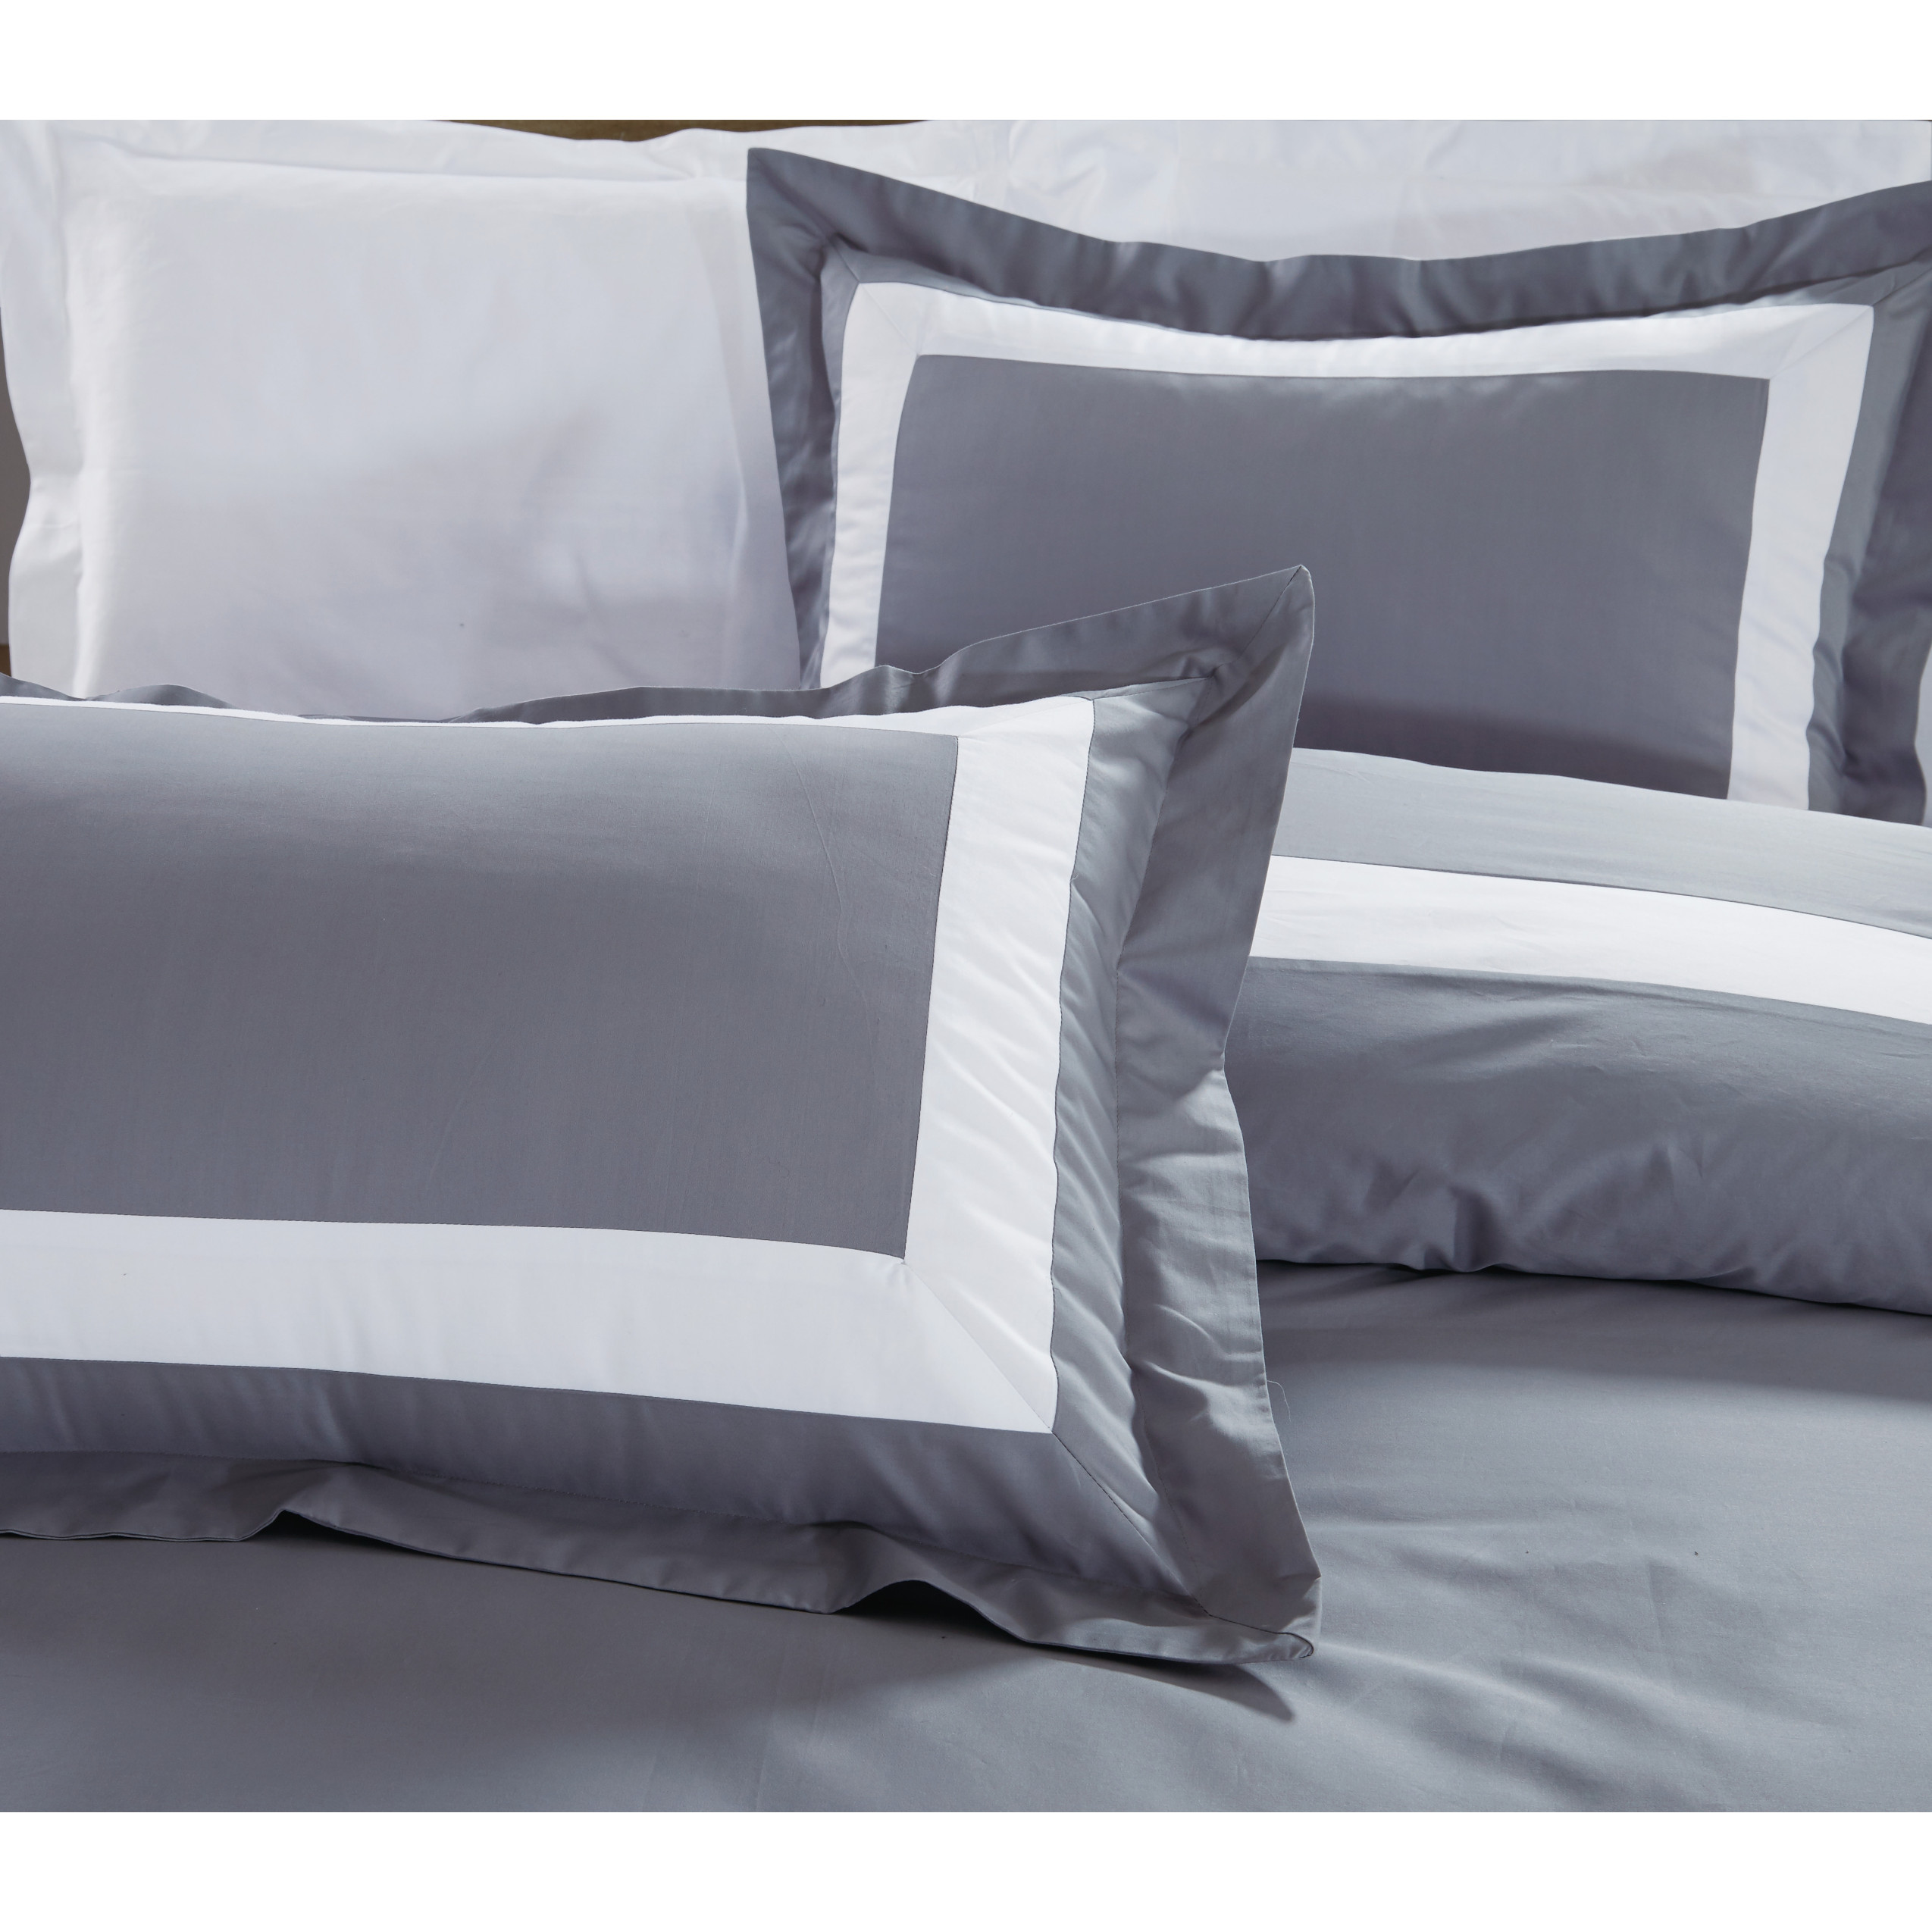 7155ce7e0f30 OC - Royal Hotel Collection Border Series White Grey Bed Set ...